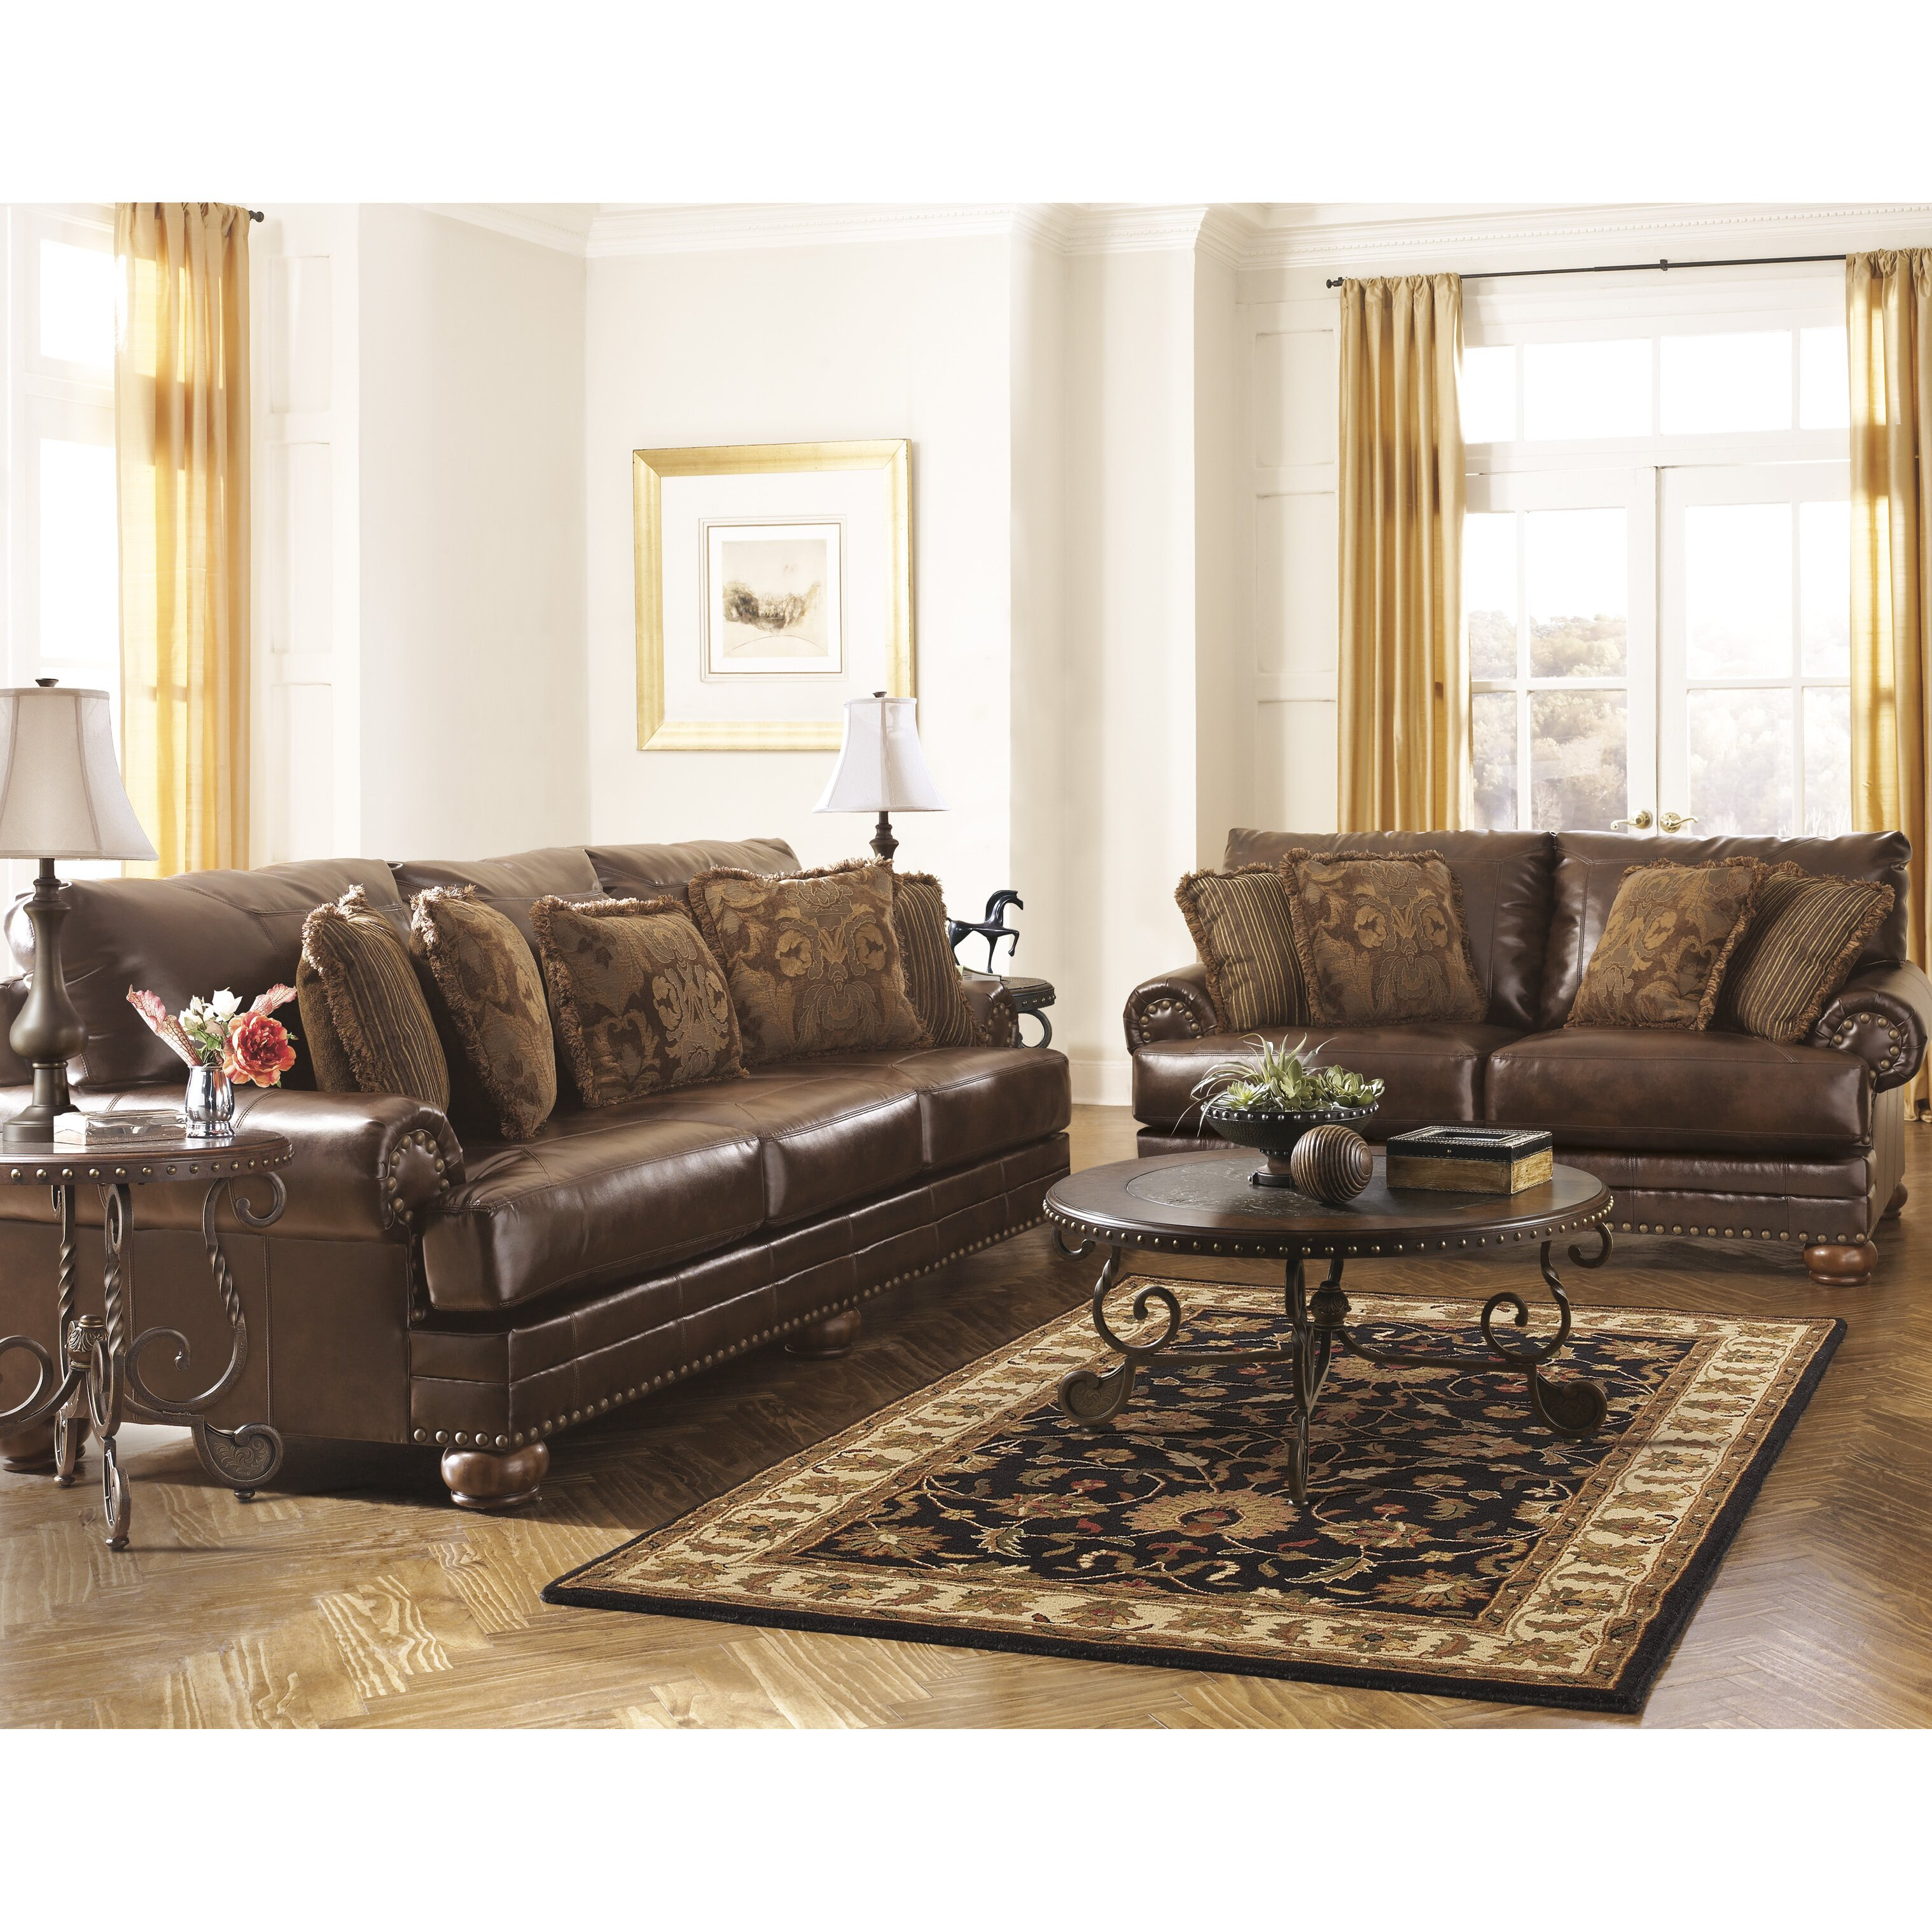 Signature design by ashley leighton leather sofa reviews for Ashley leather sofa